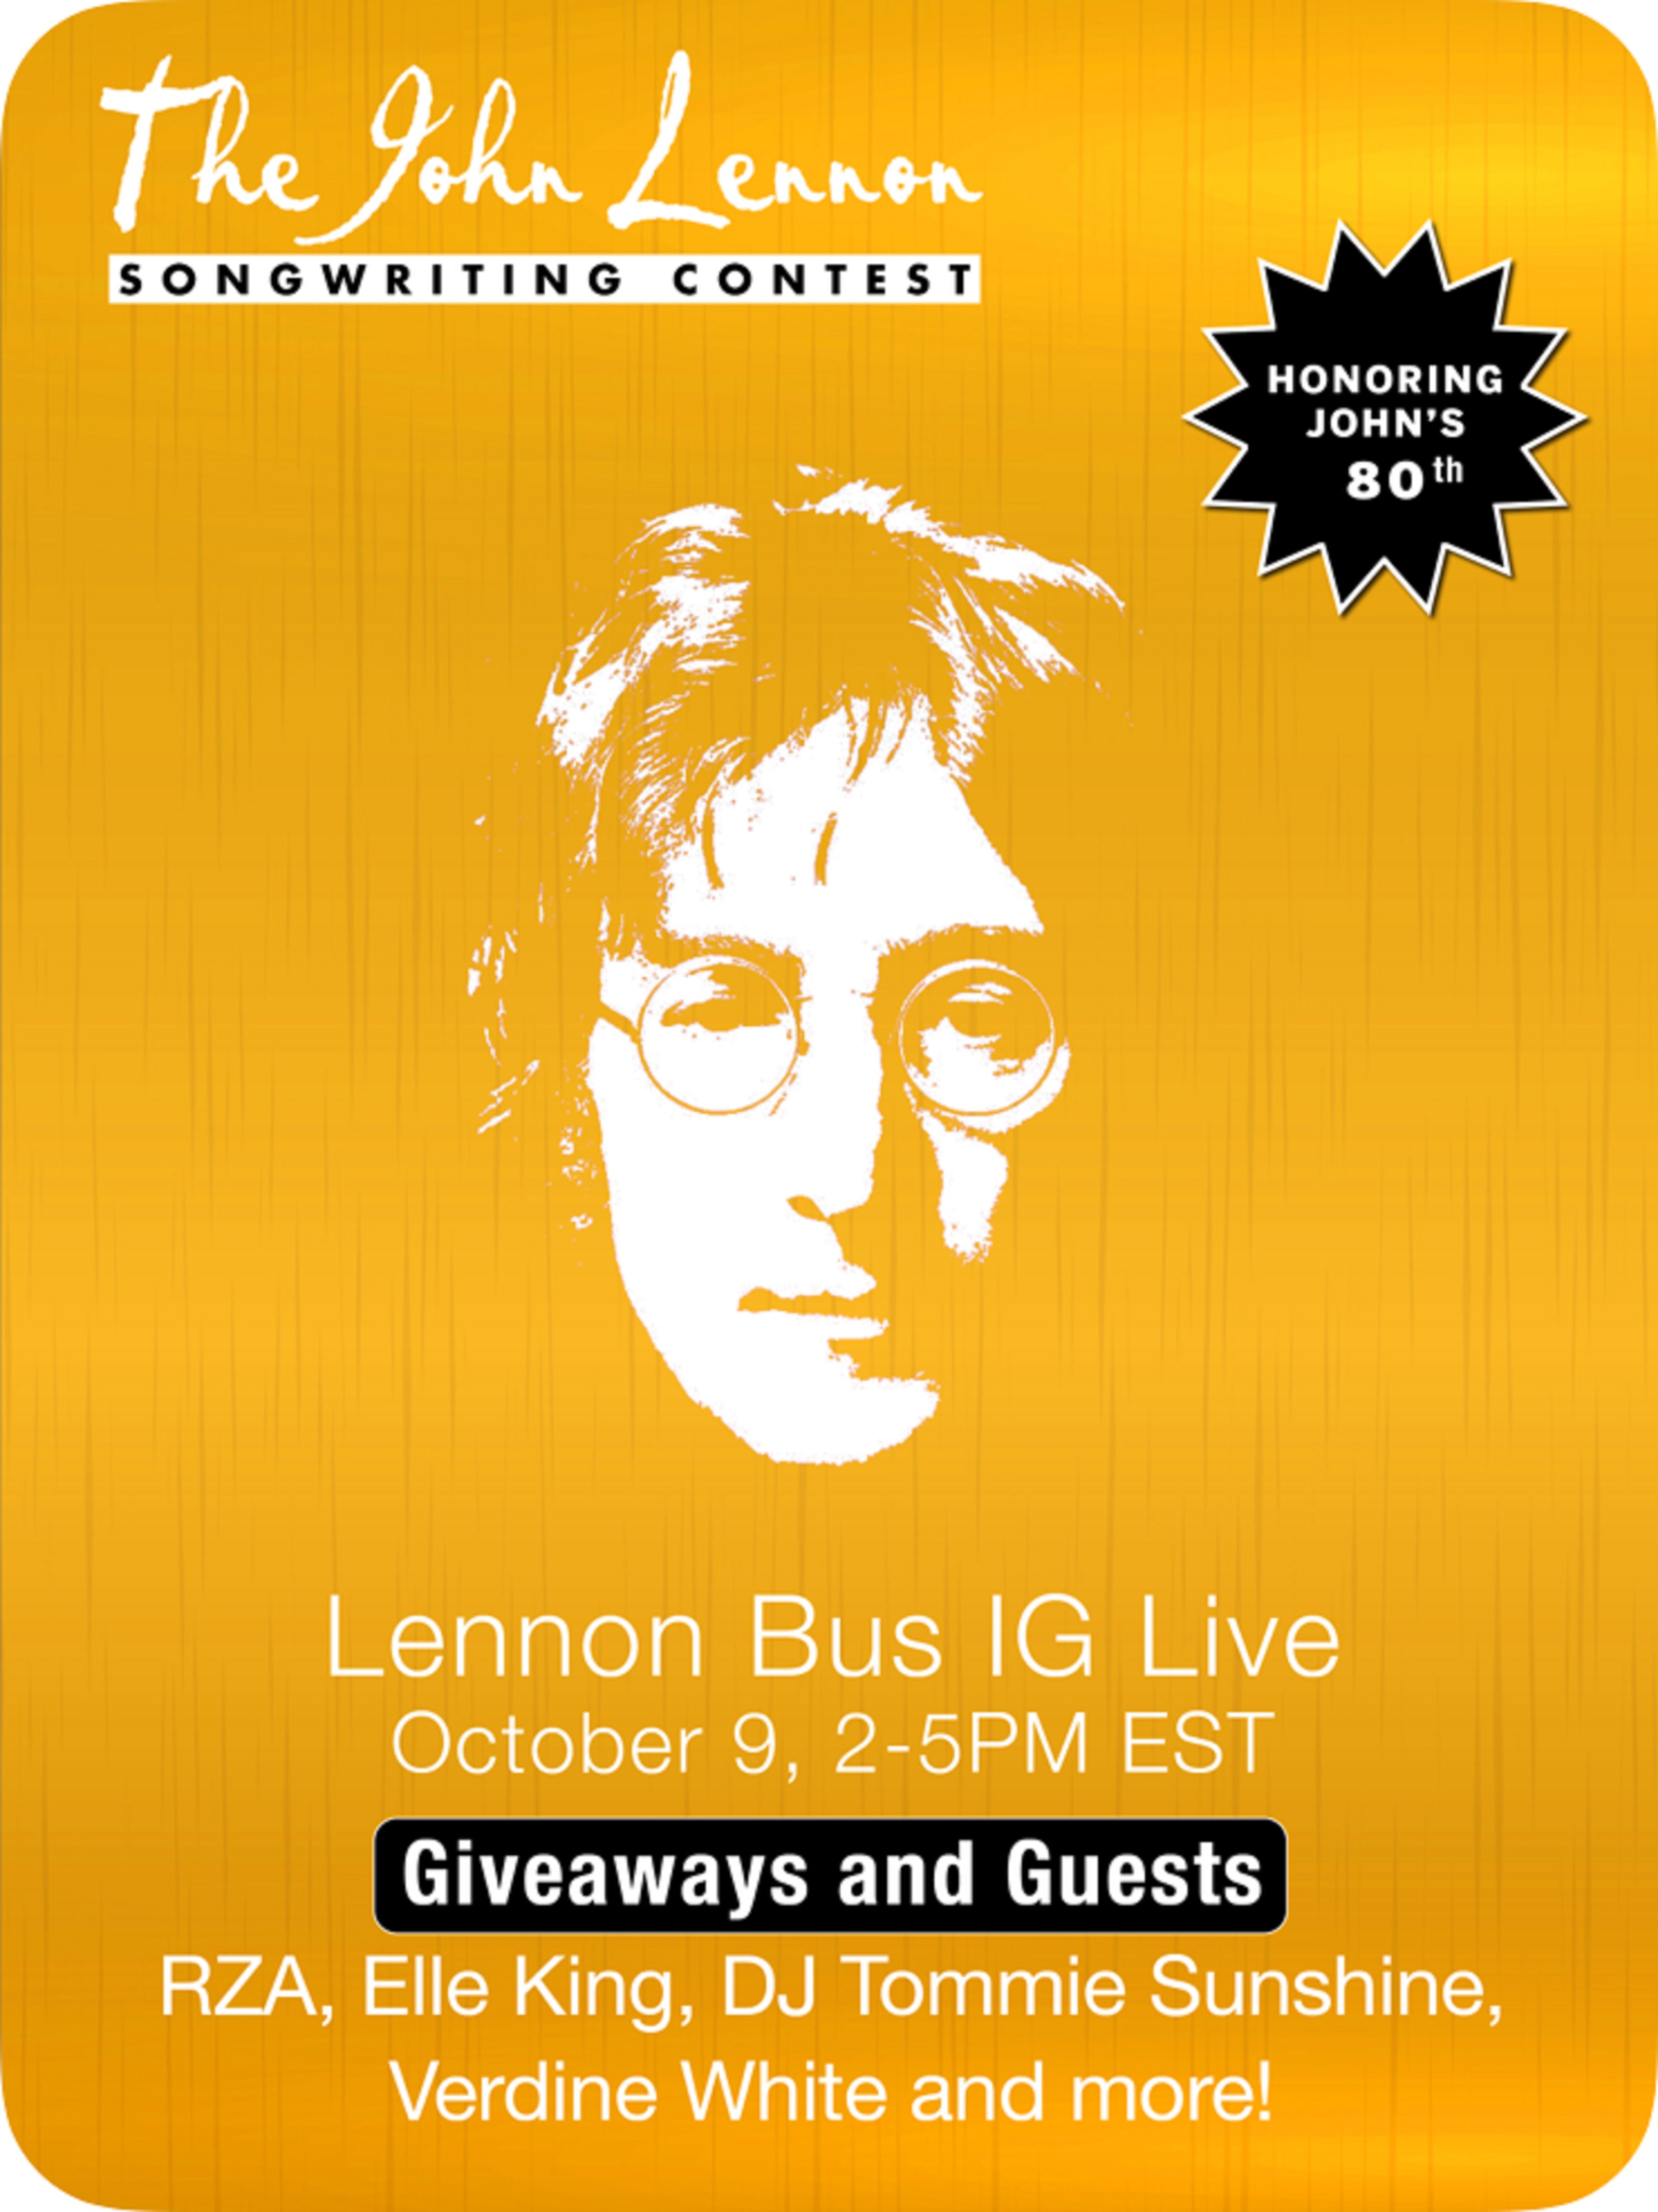 John Lennon Bus IG Live Party Today